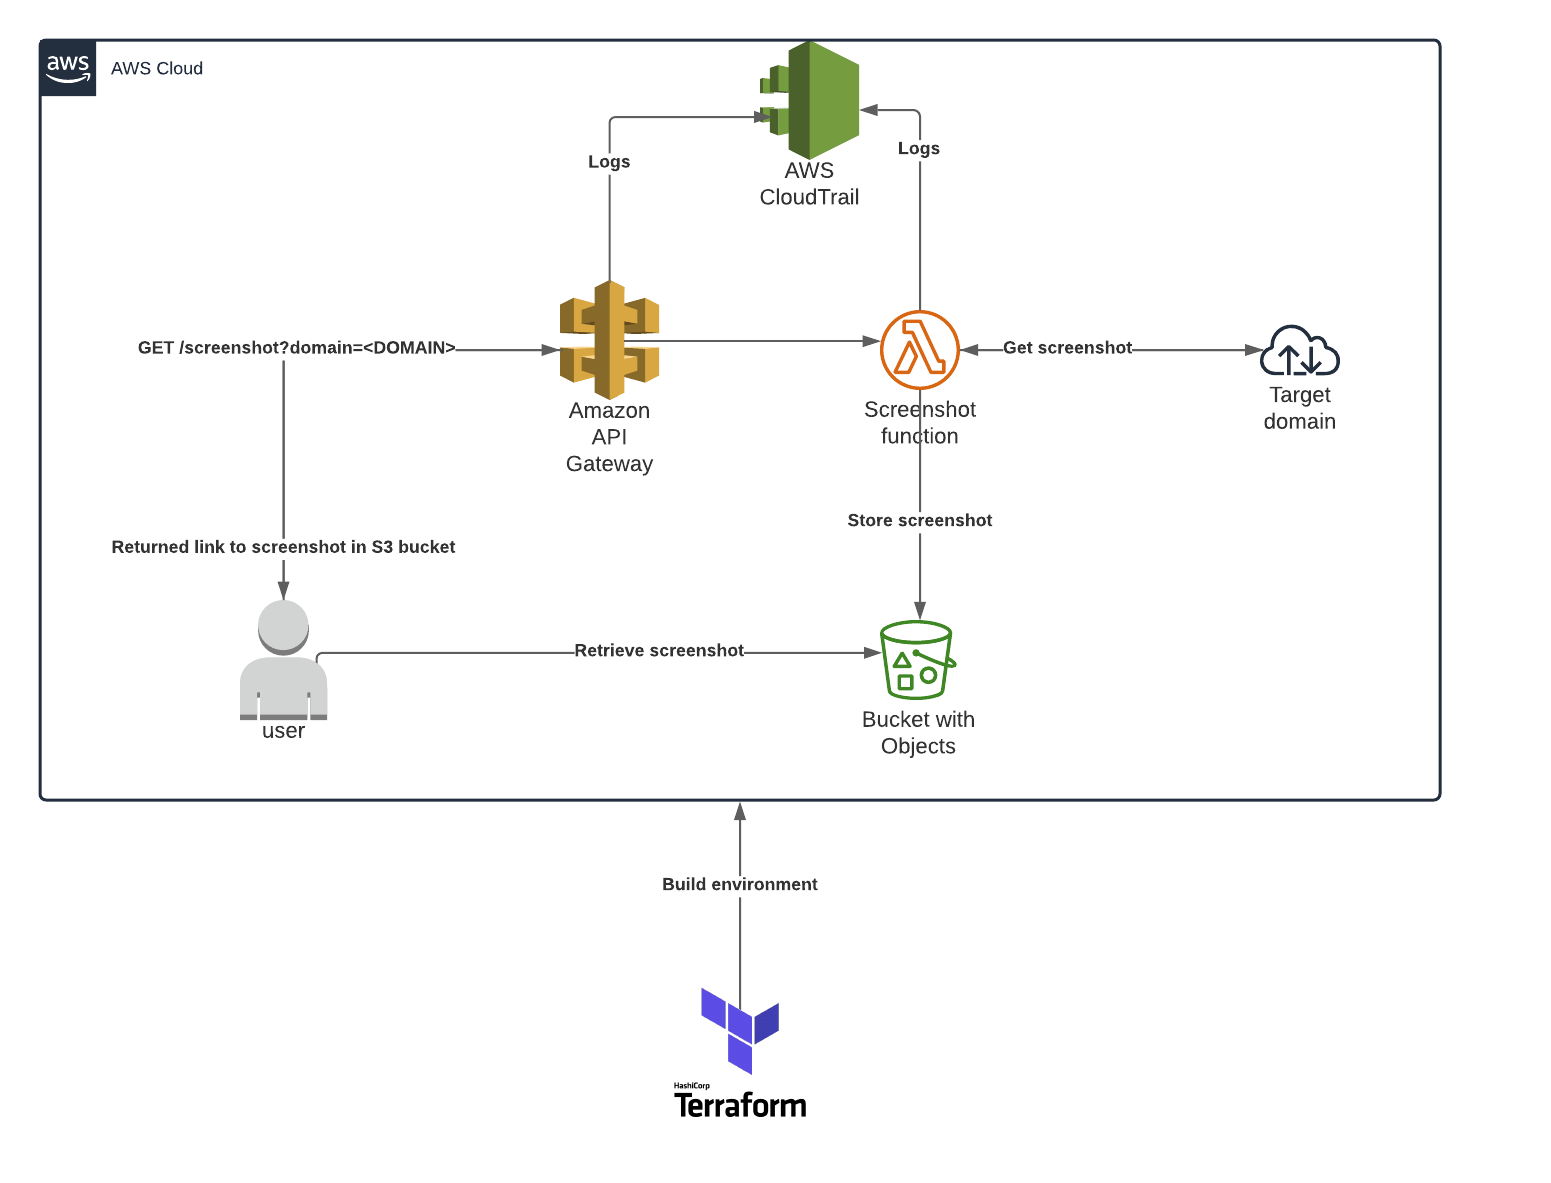 High level diagram illustrating what will be built in AWS